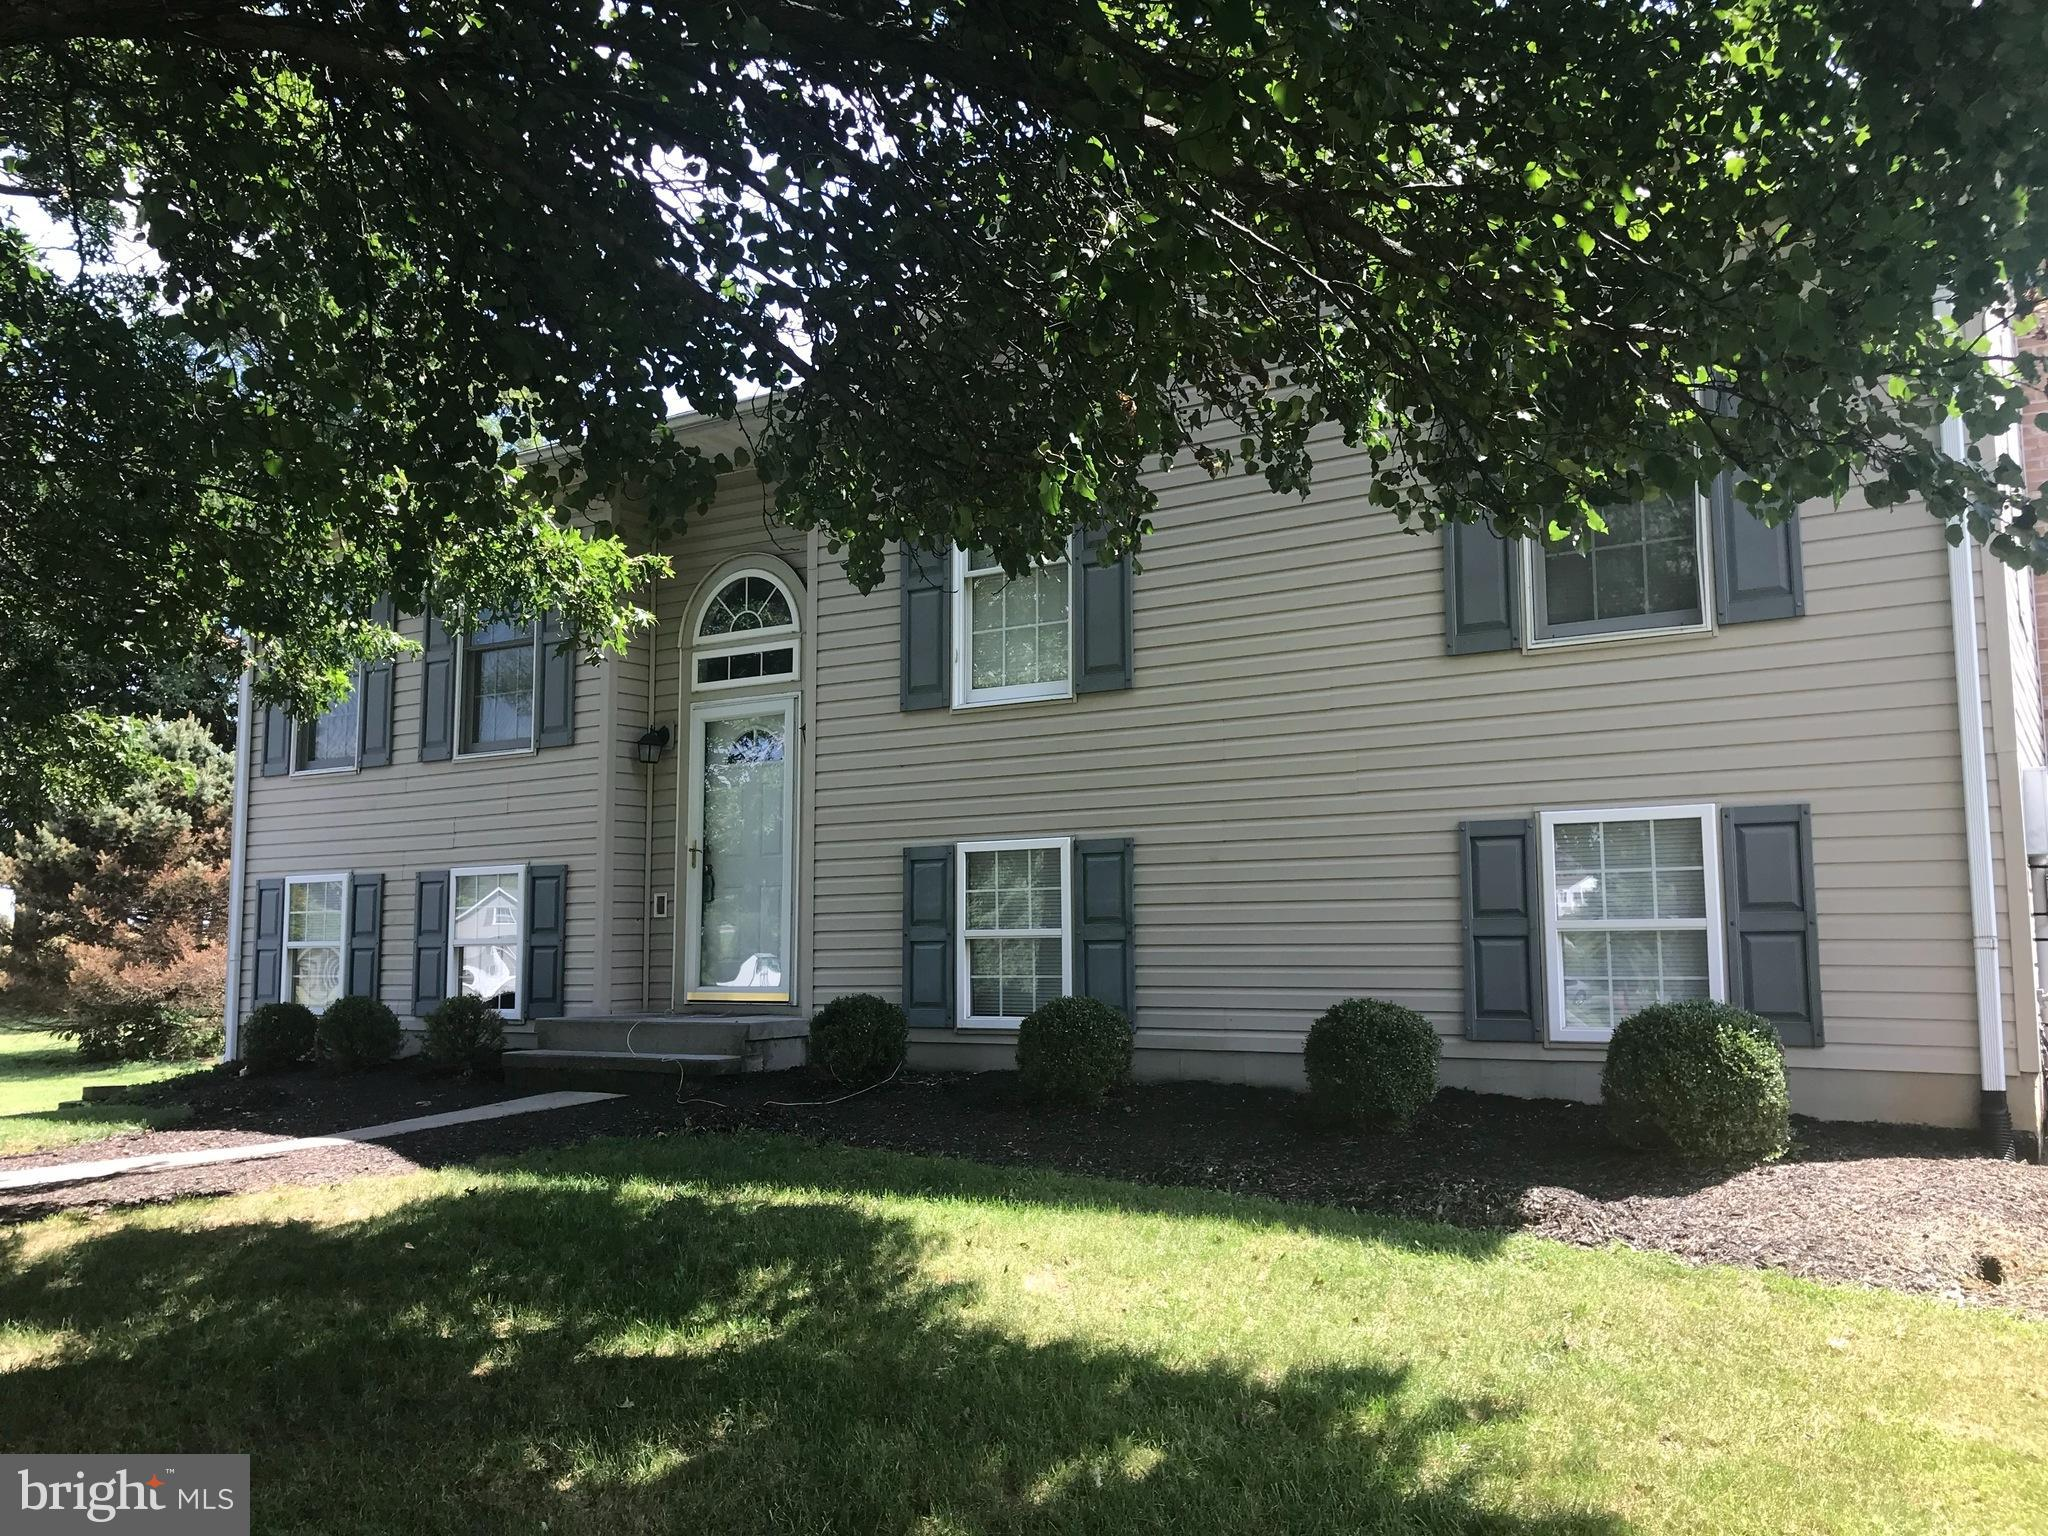 13833 CHARLTON COURT, CLEAR SPRING, MD 21722